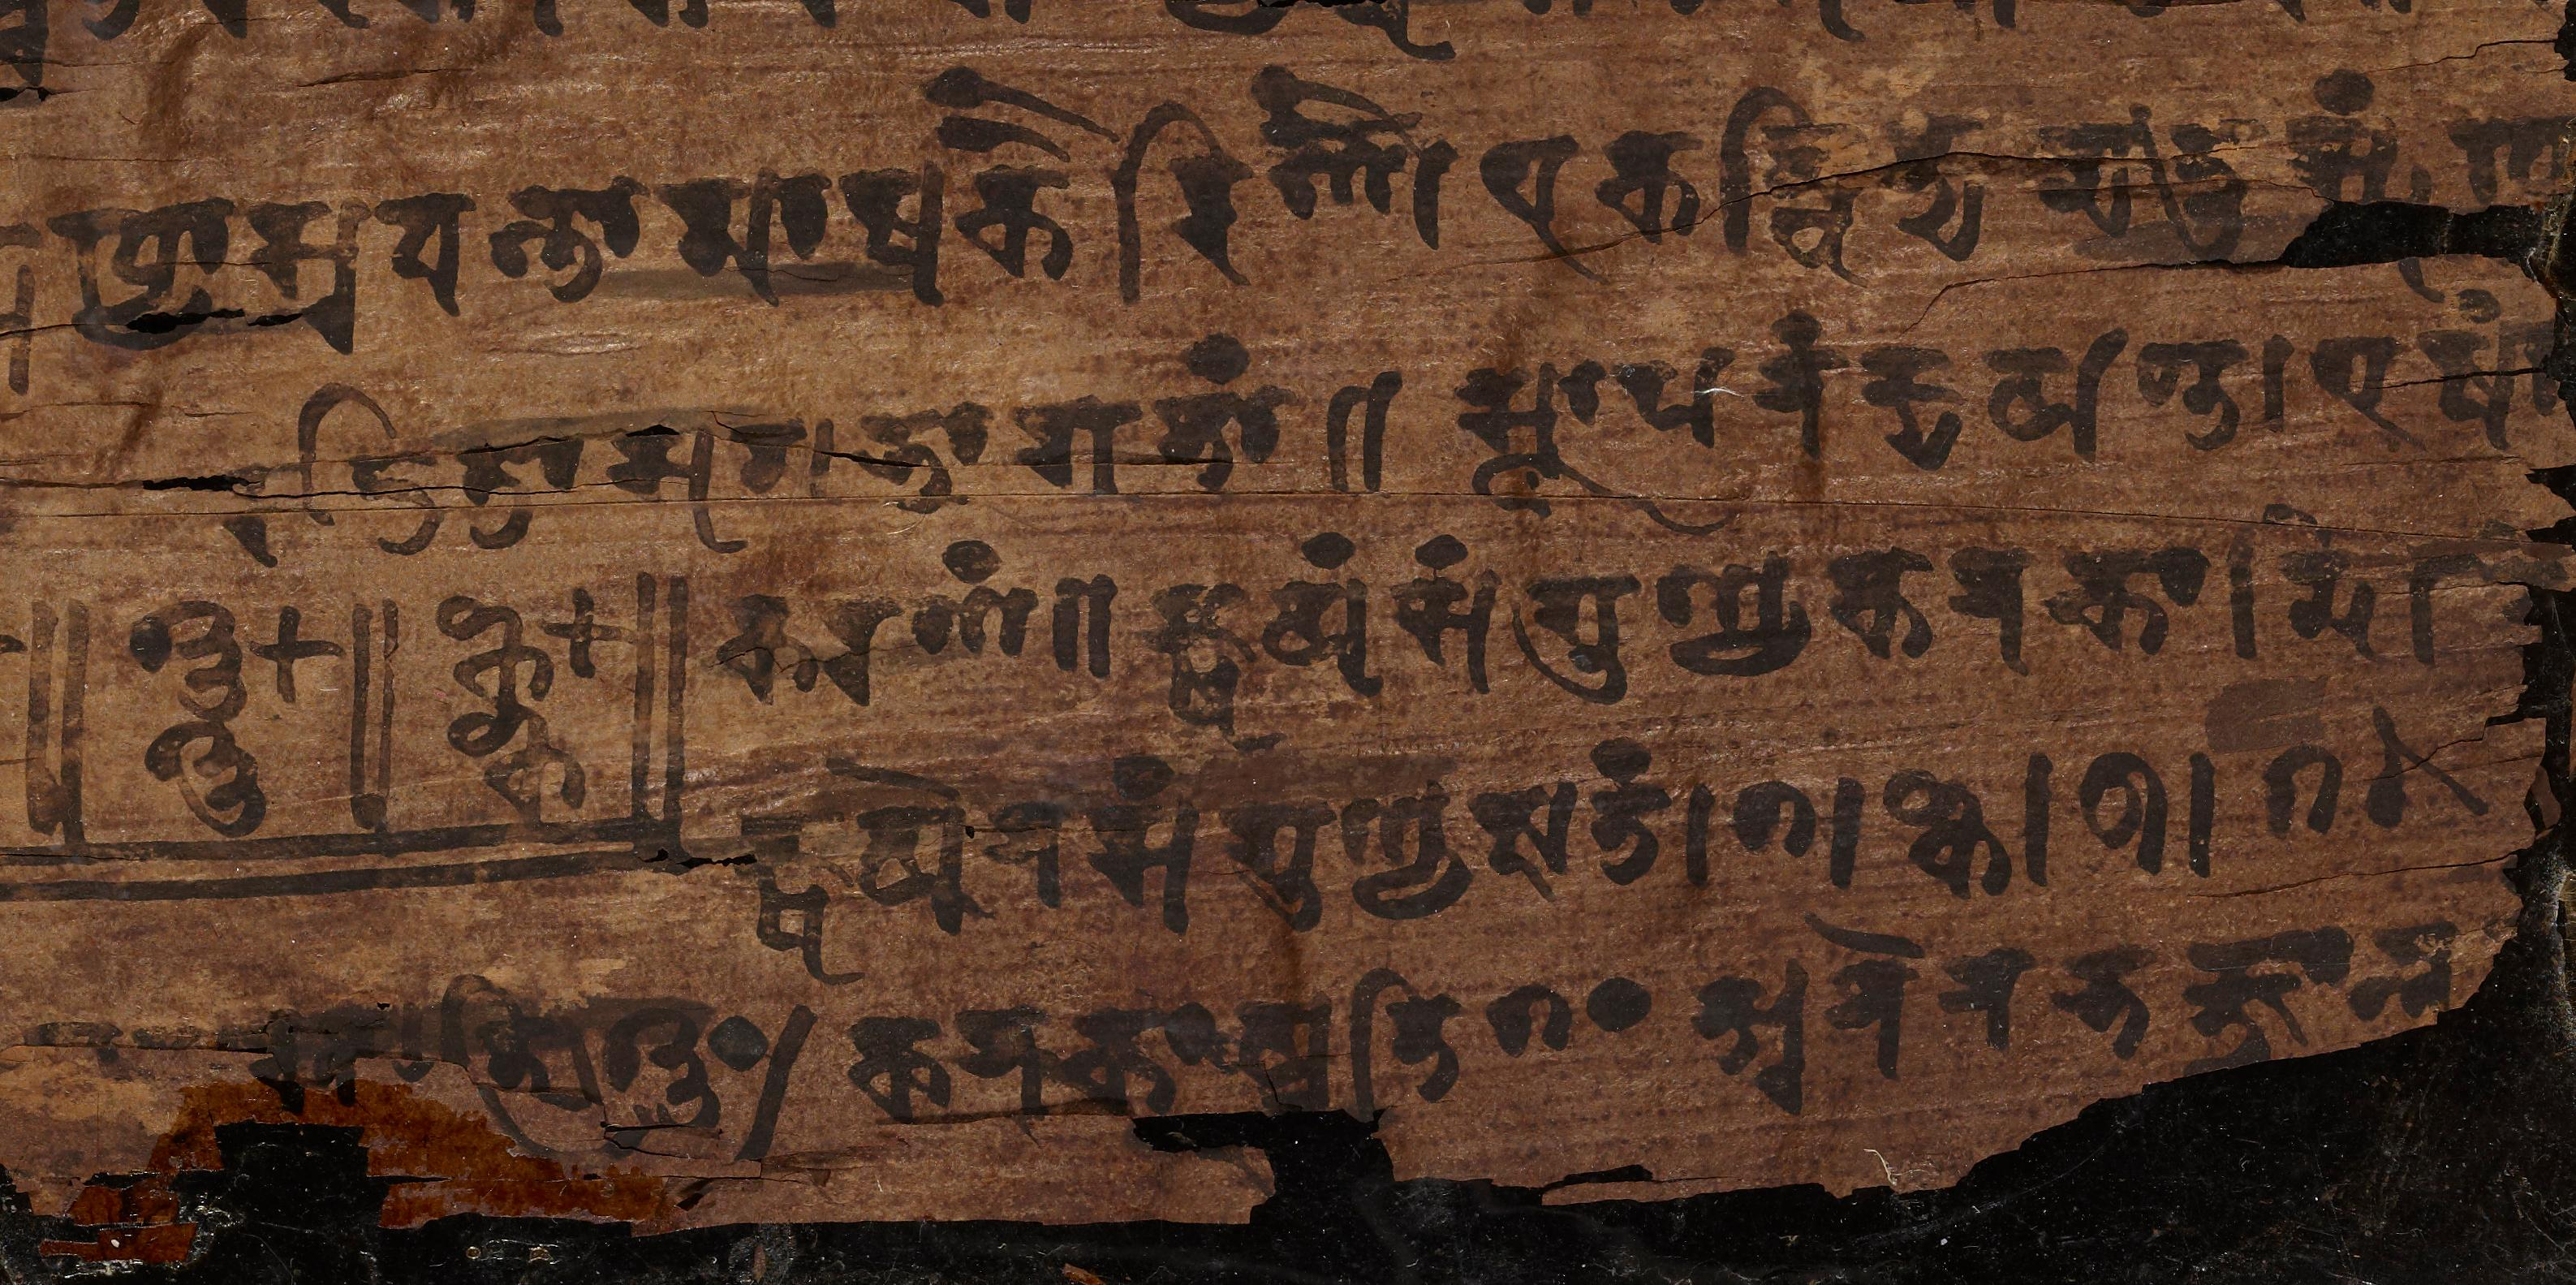 Much ado about nothing: ancient Indian text contains earliest zero symbol